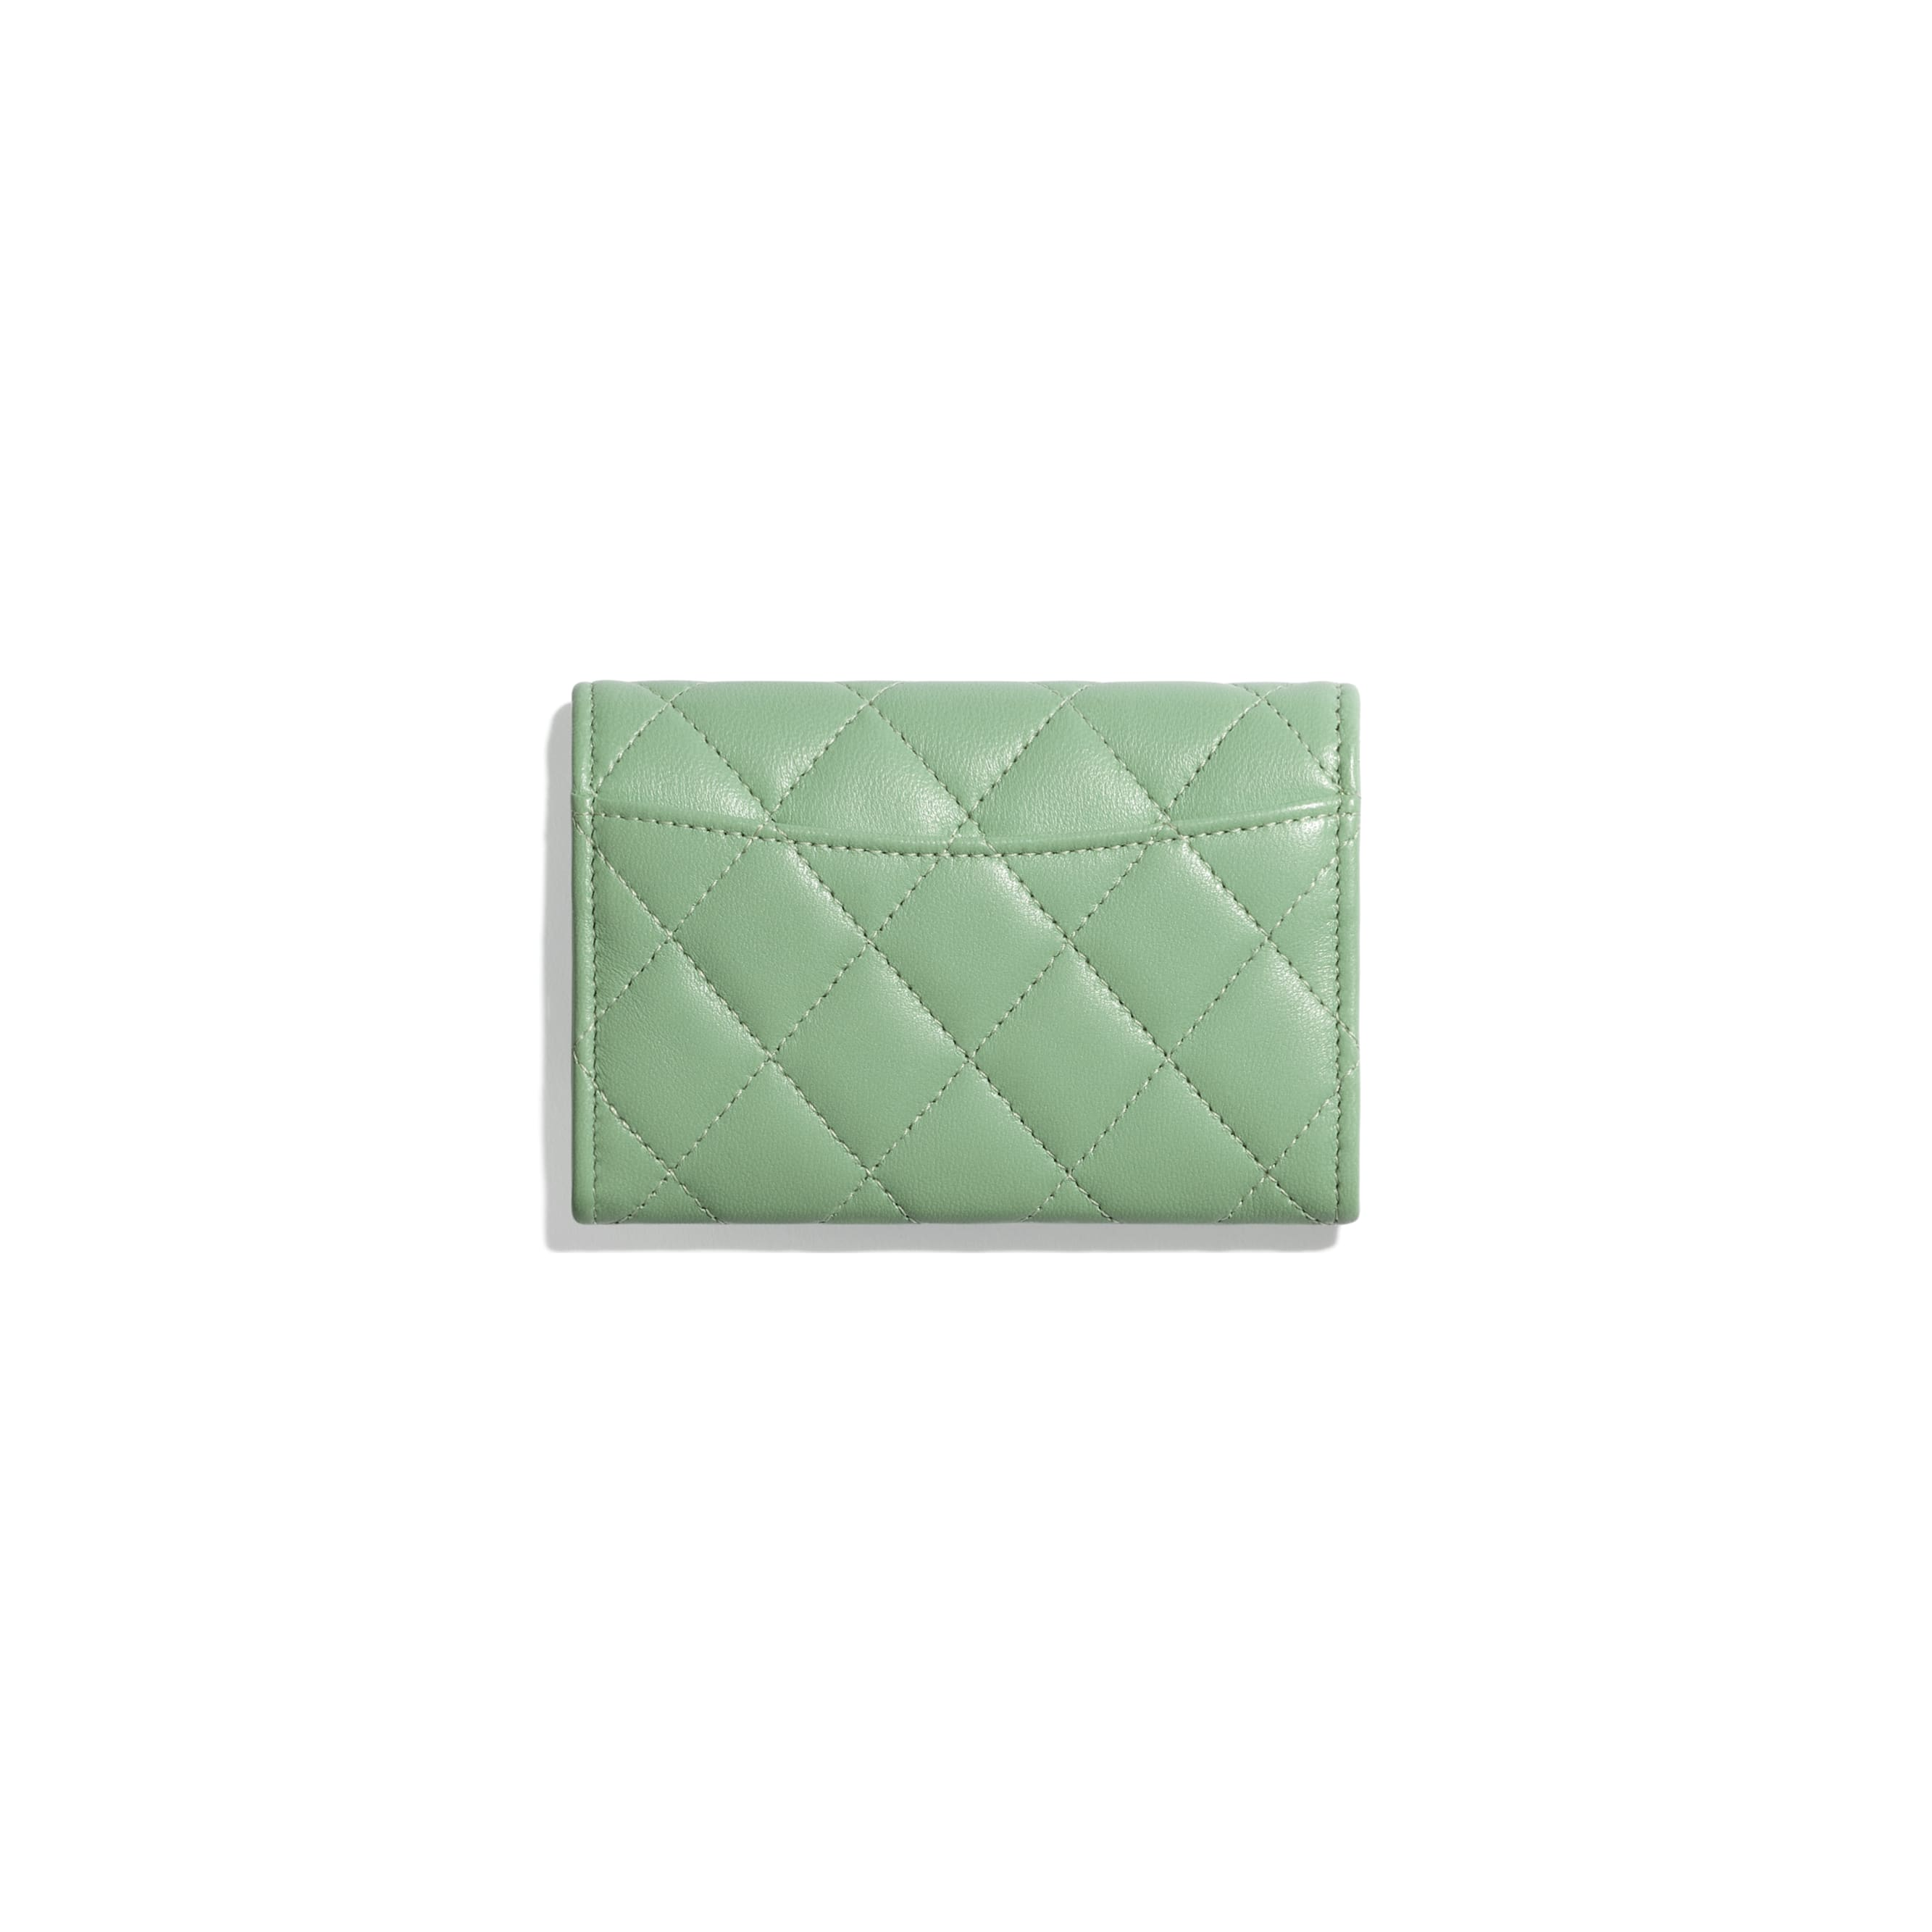 Classic Card Holder - Green - Lambskin - CHANEL - Alternative view - see standard sized version